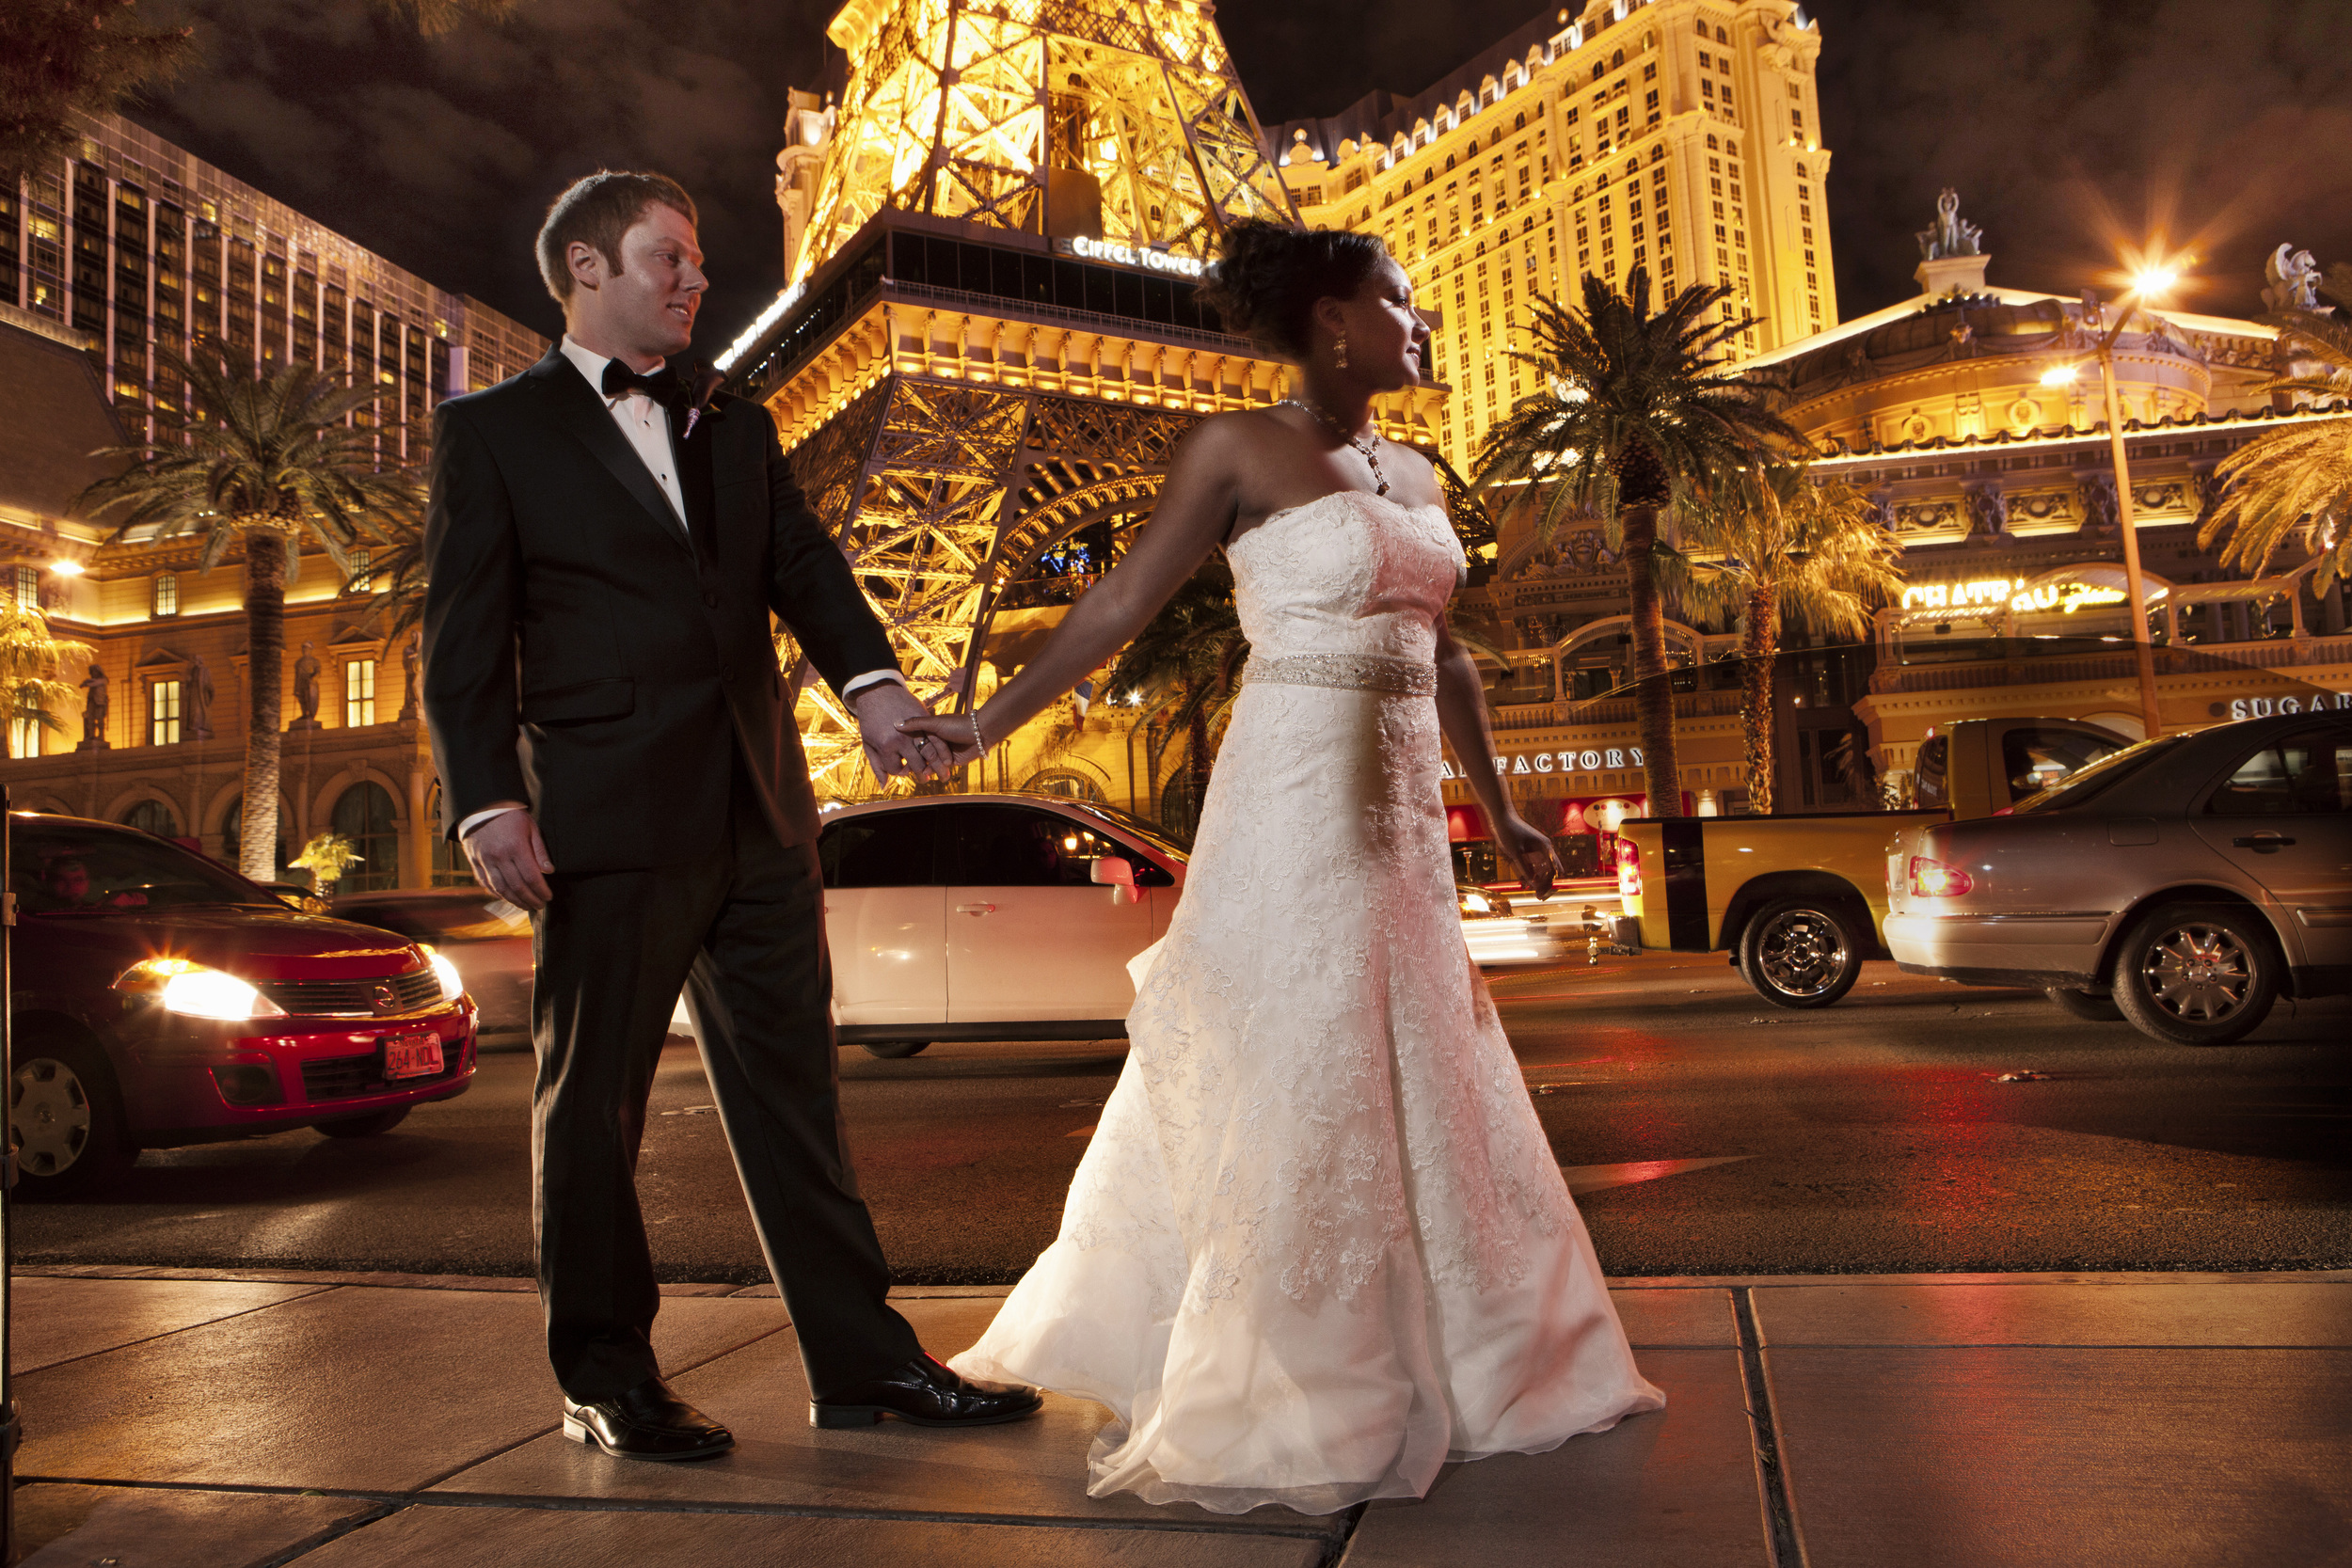 Las Vegas Wedding Planner Andrea Eppolito is published in Where Traveler, discussing destination wedding planning along side of David Tutera. Photo by AltF.